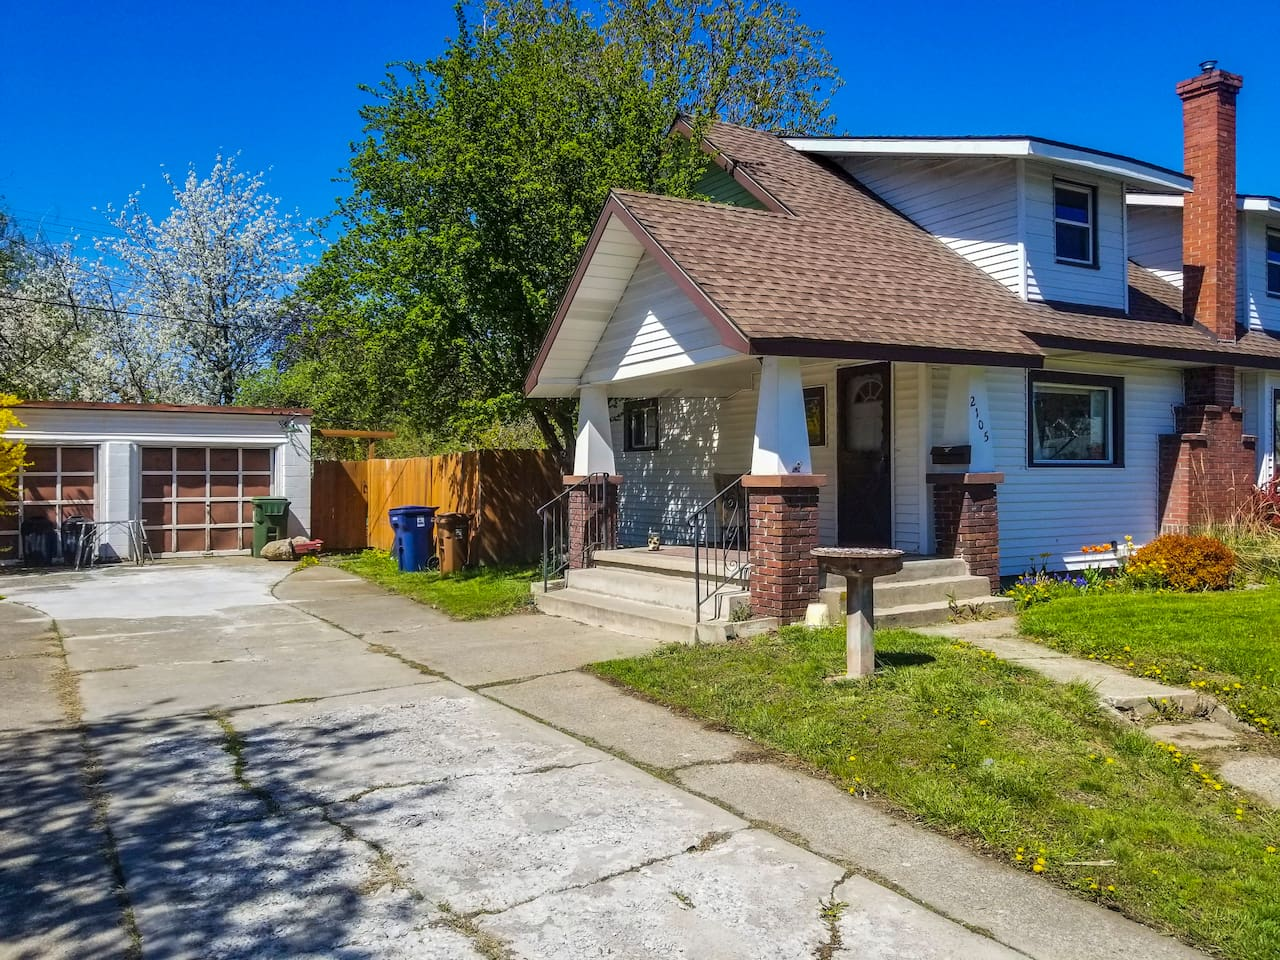 Nice home in a good neighborhood with ample parking.